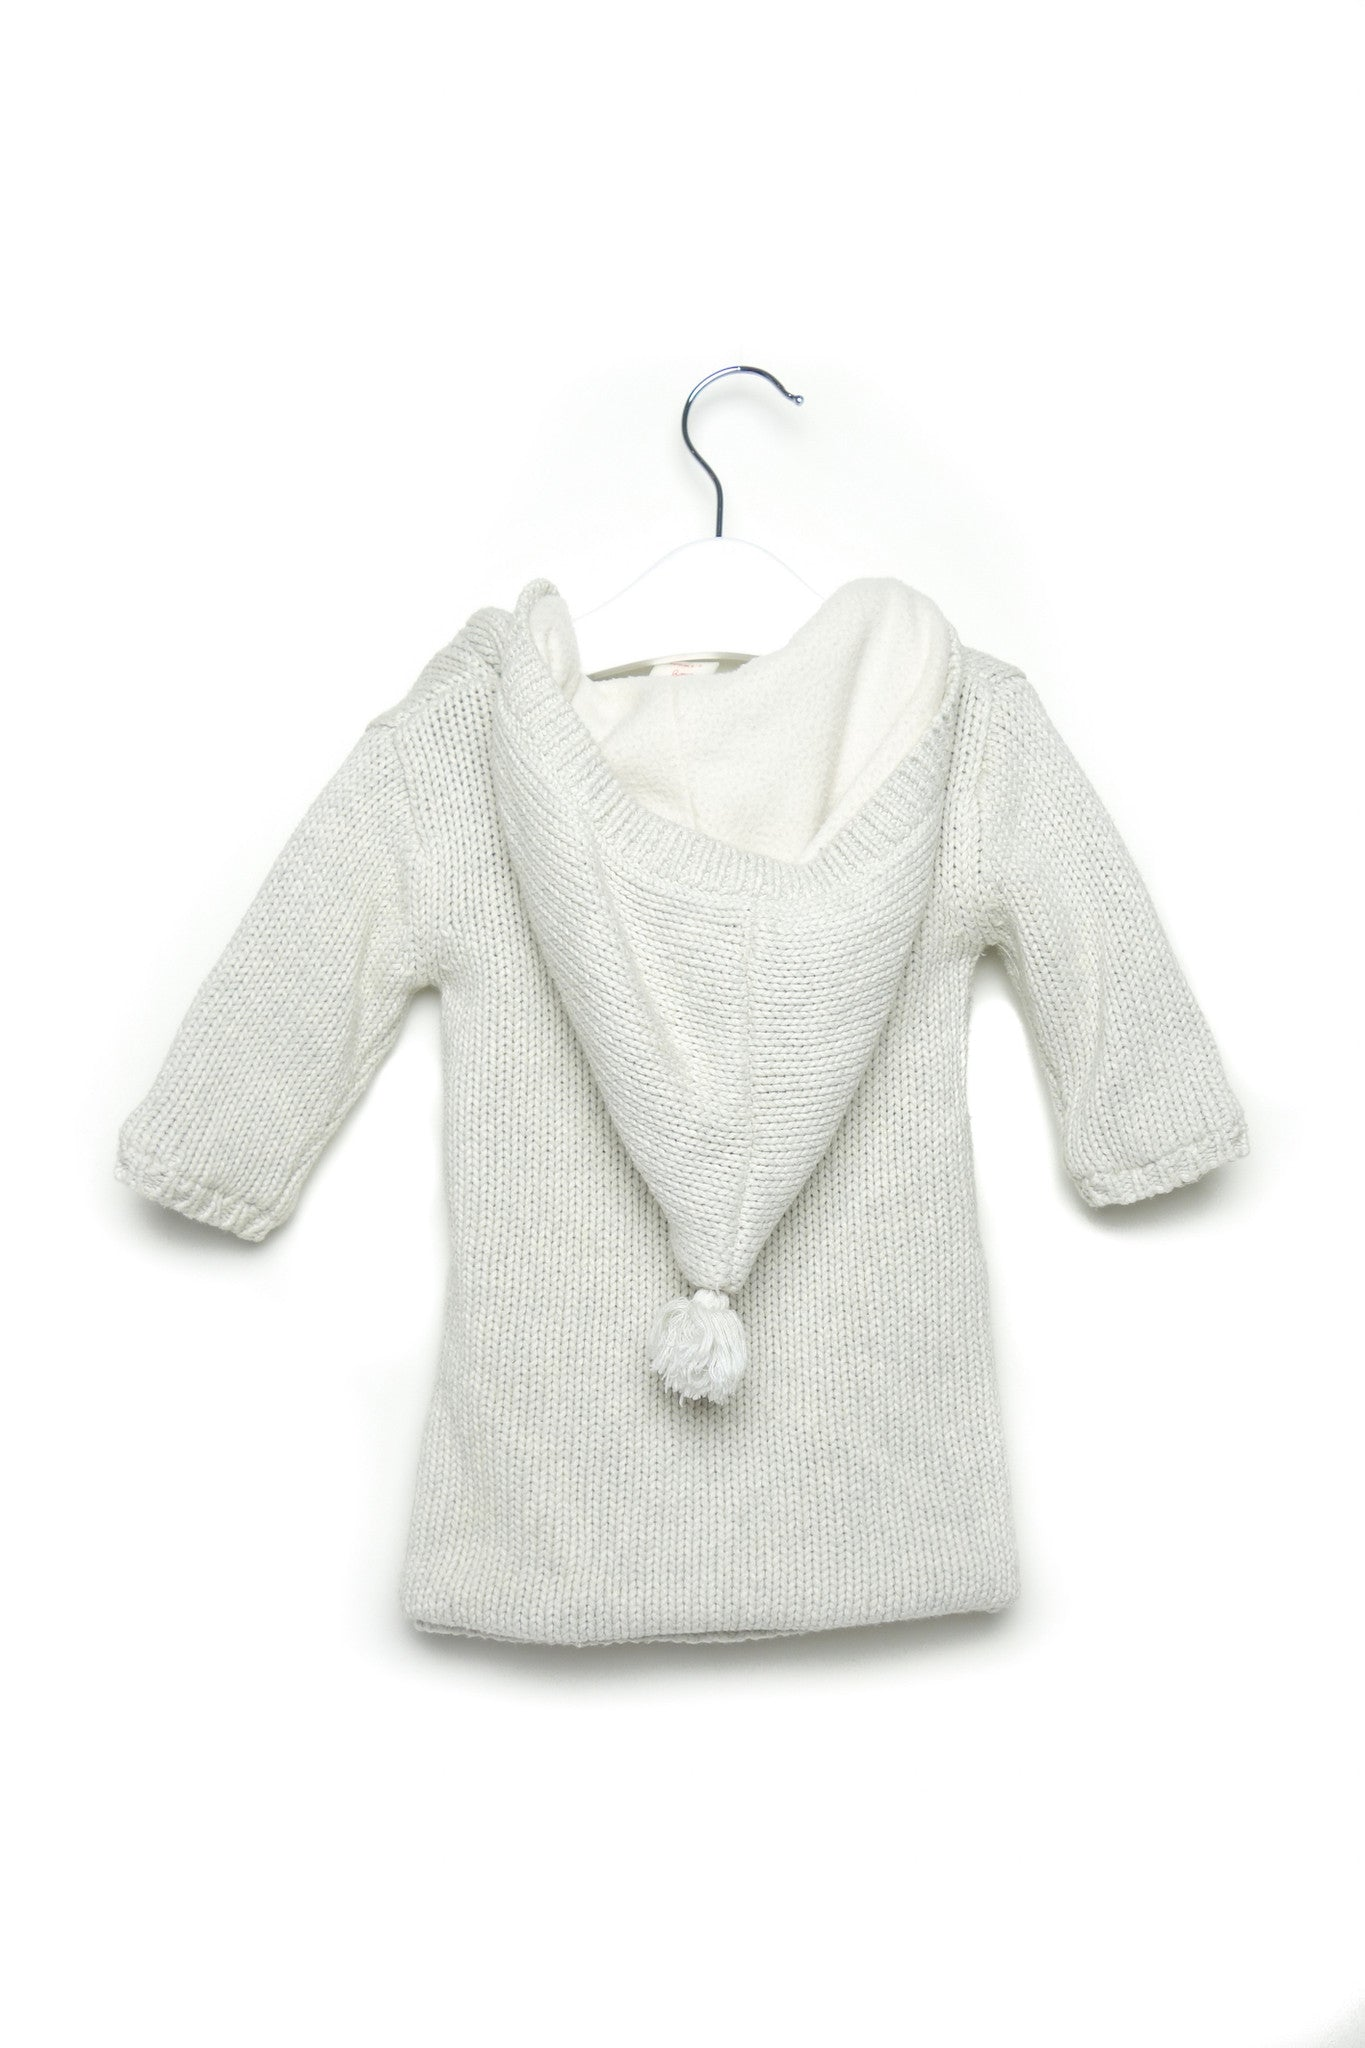 10001496BG~Sweater 0-3M, Seed at Retykle - Online Baby & Kids Clothing Up to 90% Off